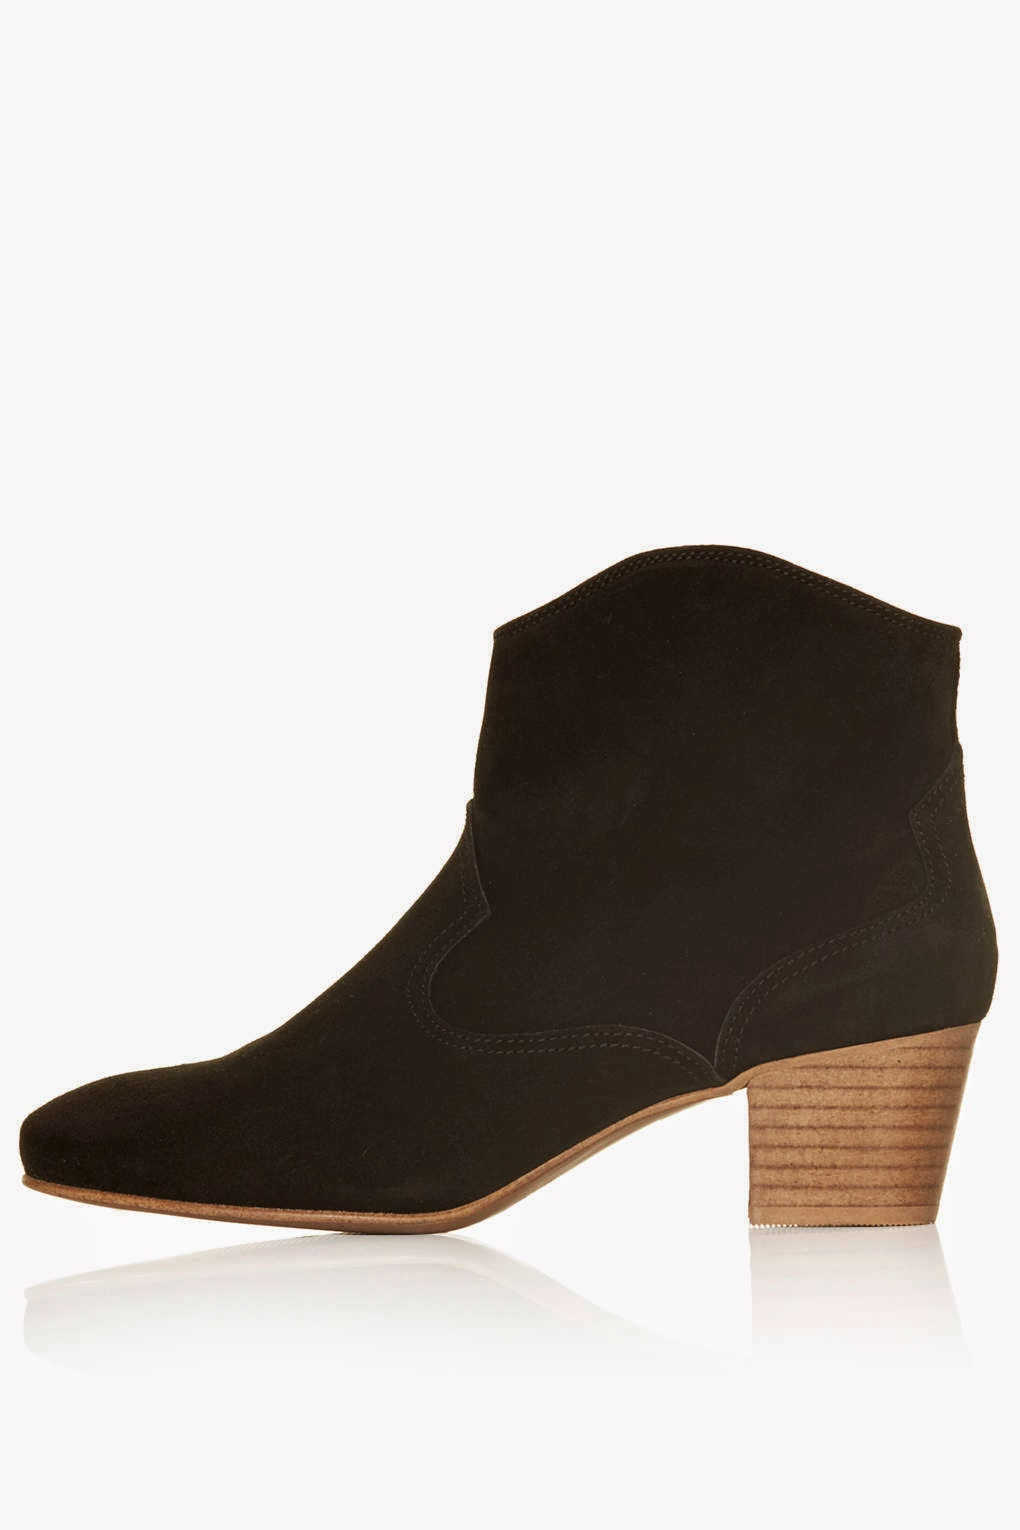 black suede cowboy boot